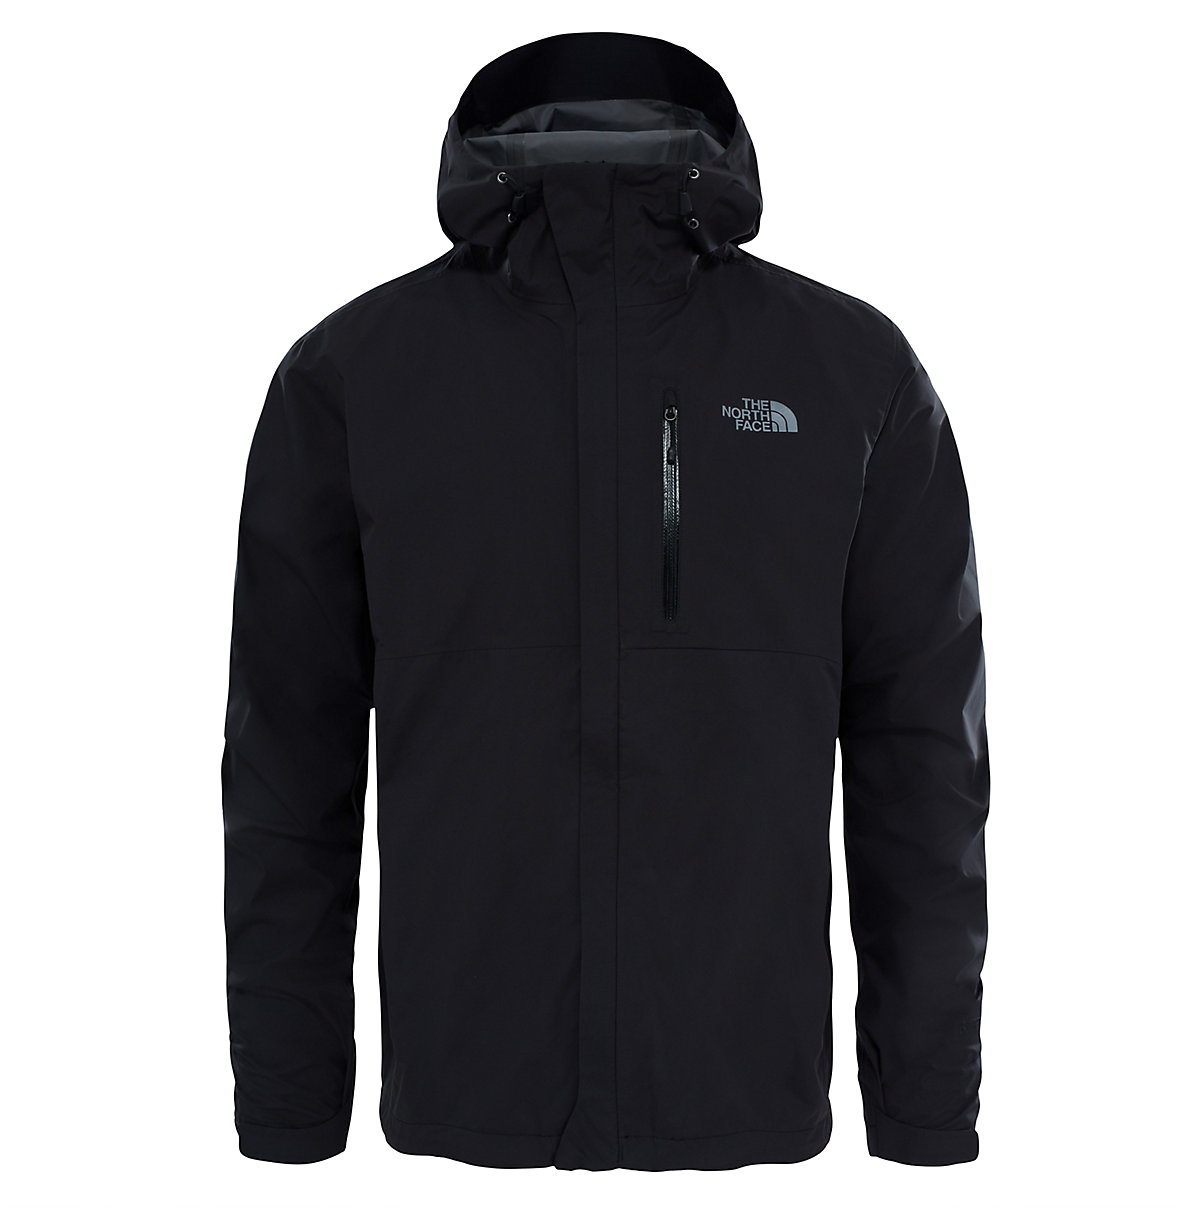 The North Face Dryzzle Jacket | Jackets